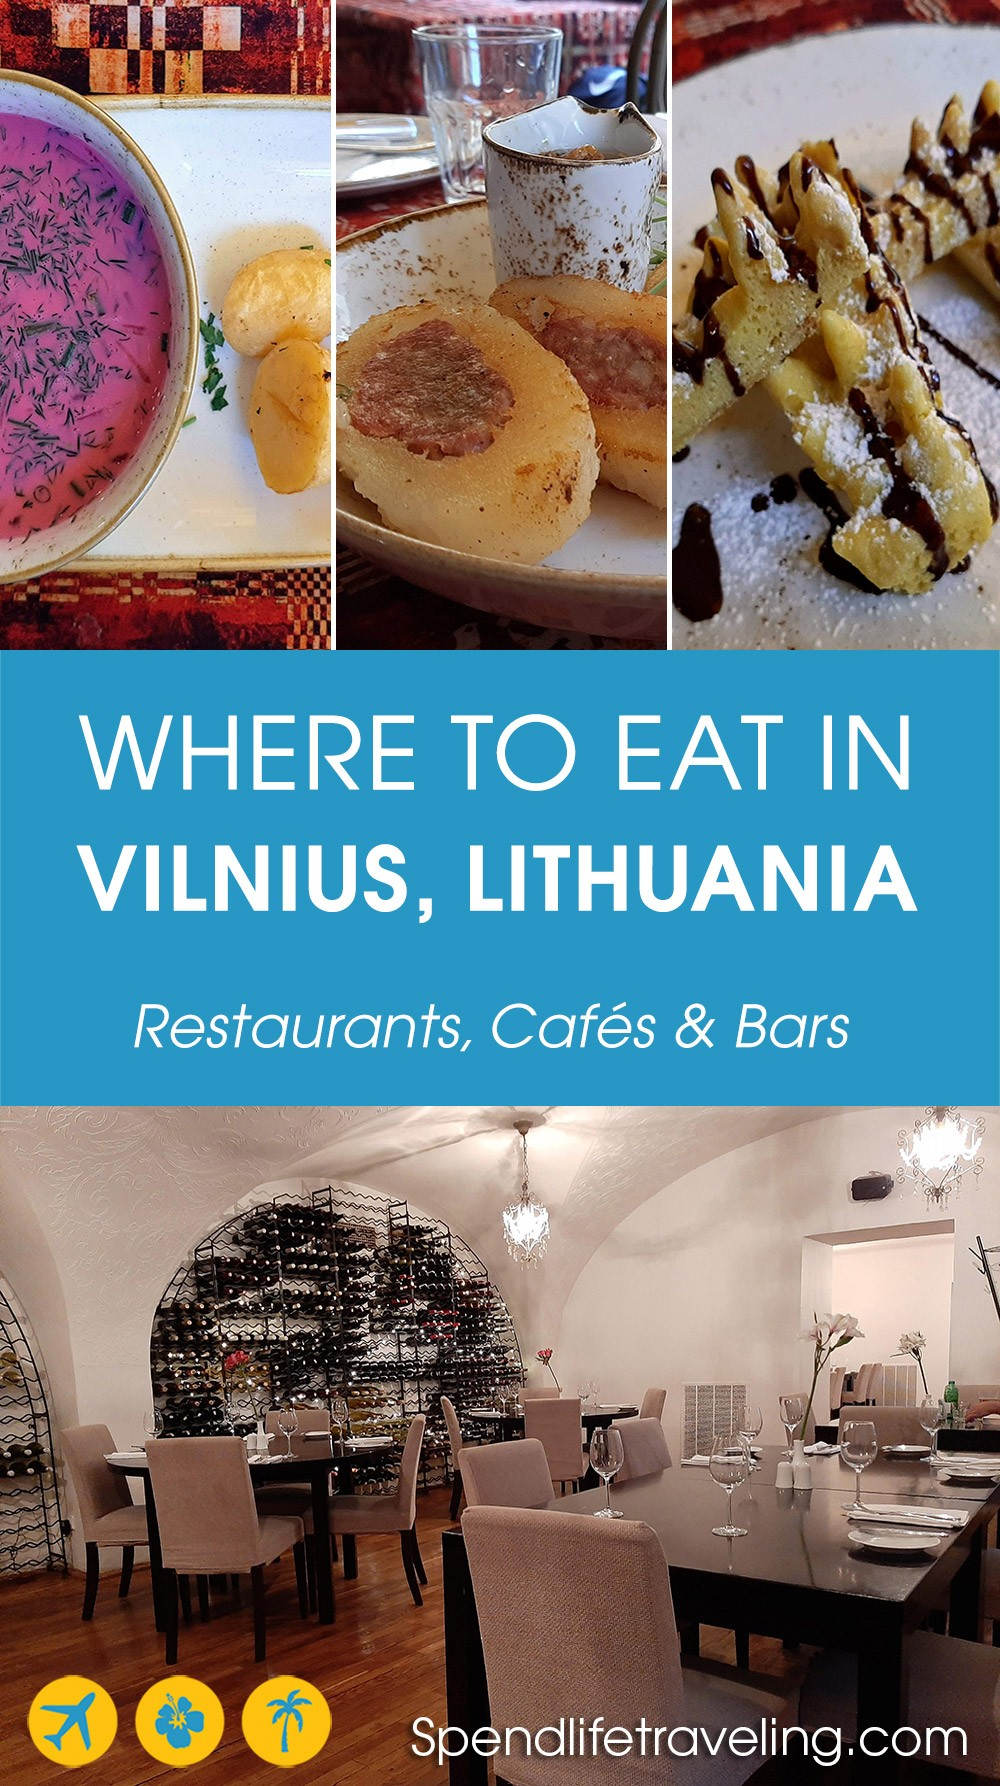 Recommendations for where to eat in #Vilnius. From local food to tapas, vegan places, fine dining, and more. #bestfood #Lithuania